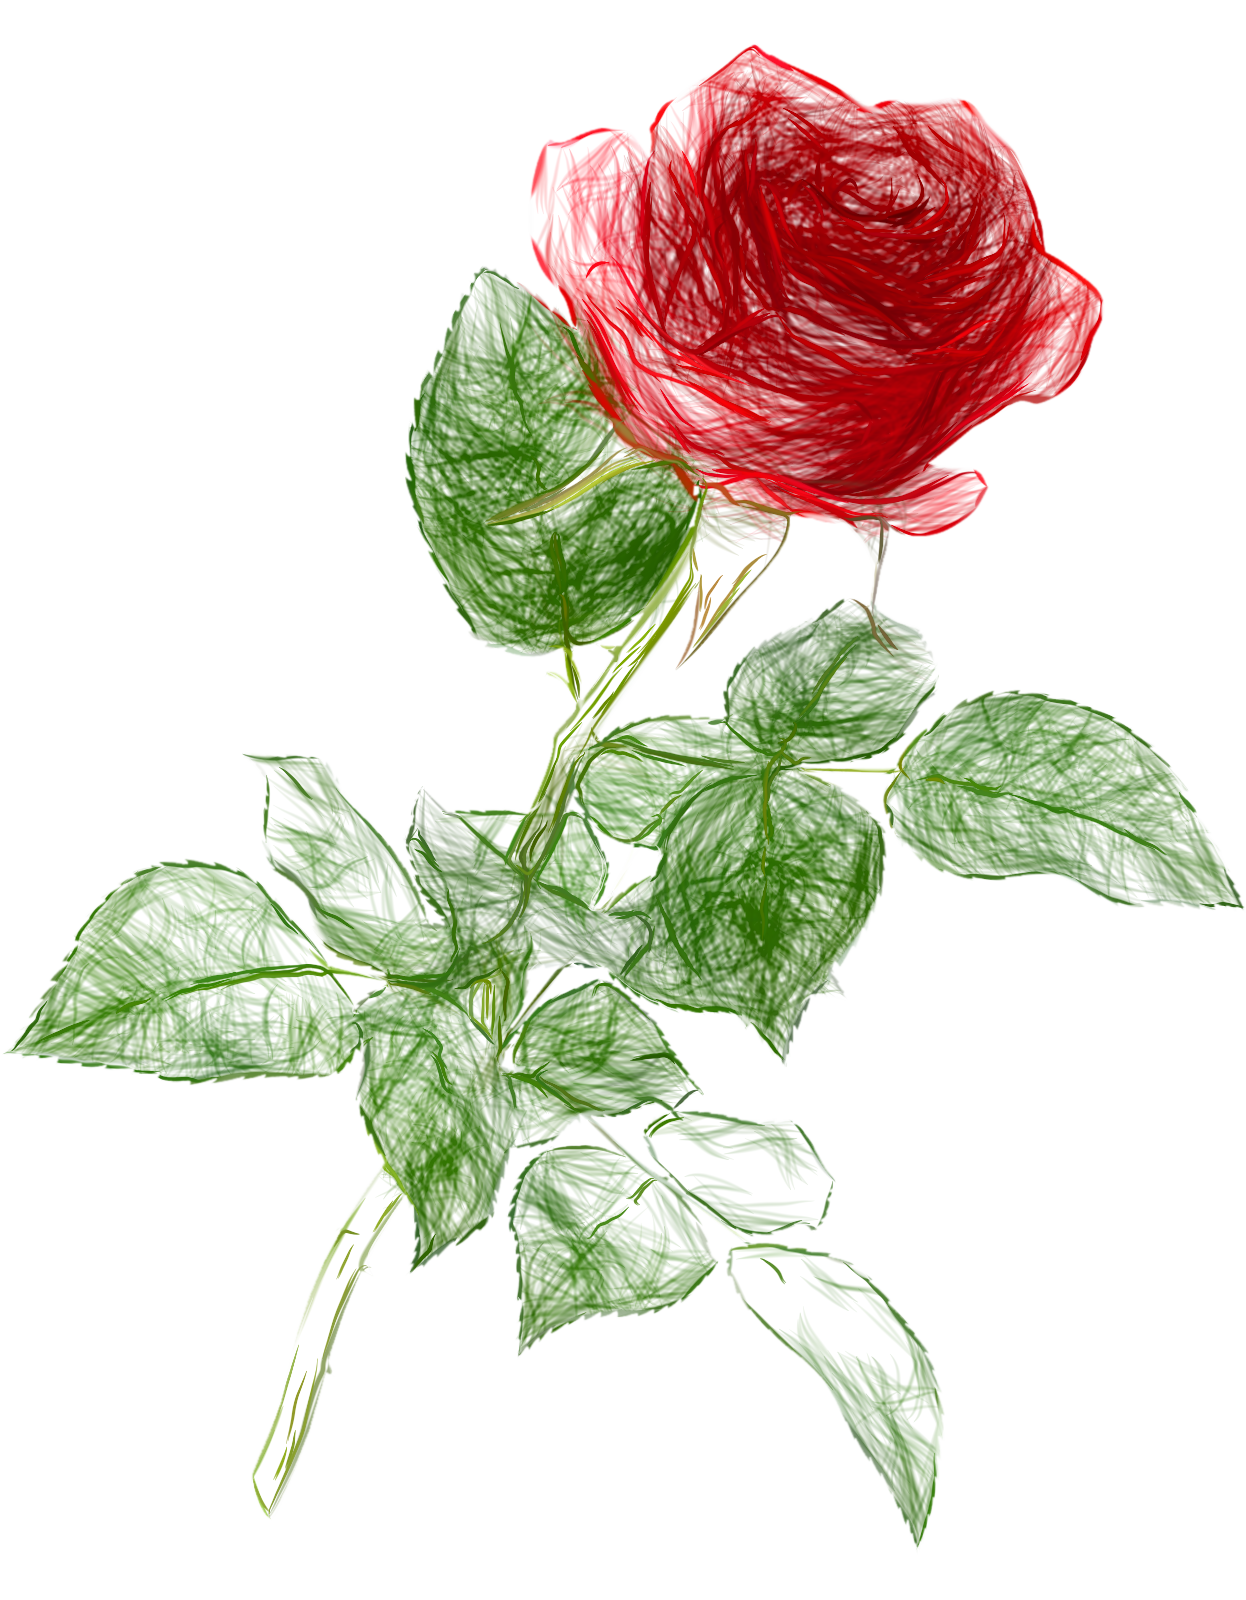 Rose drawing clip art. Clipart roses doodle